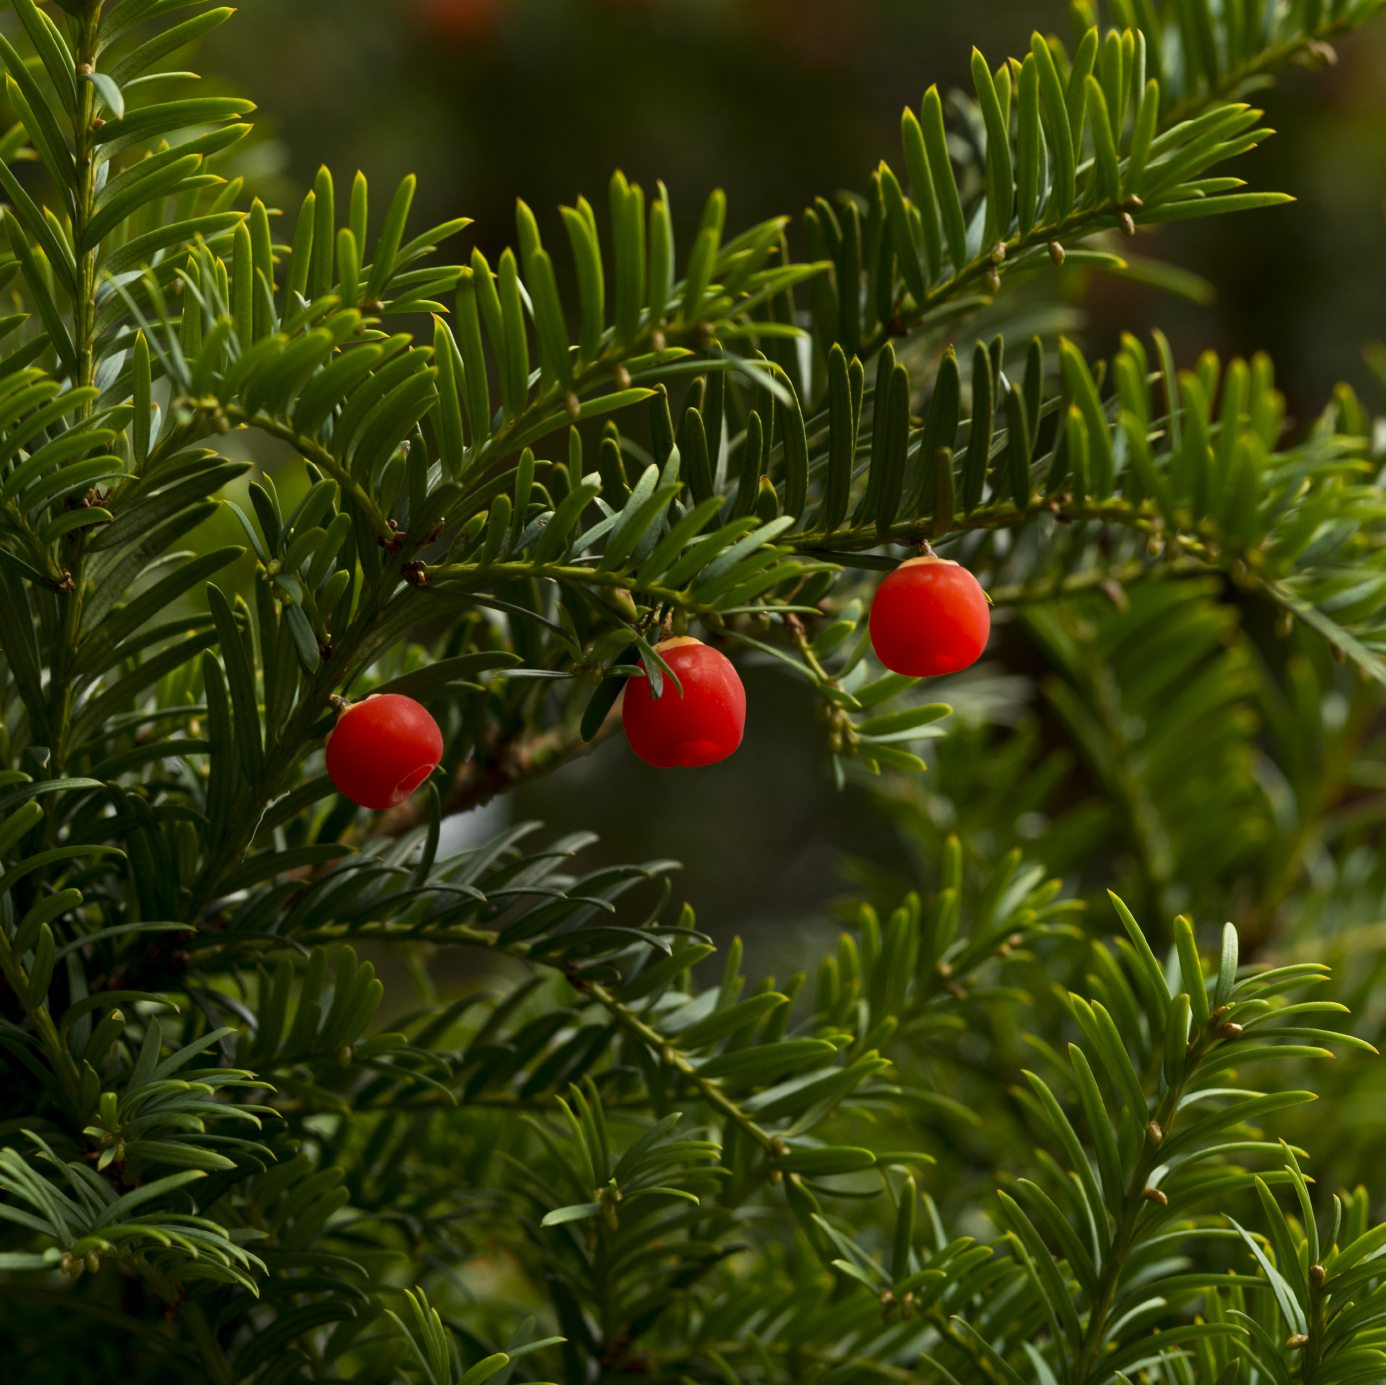 Facts About Japanese Yew Tree Is Japanese Yew Poisonous